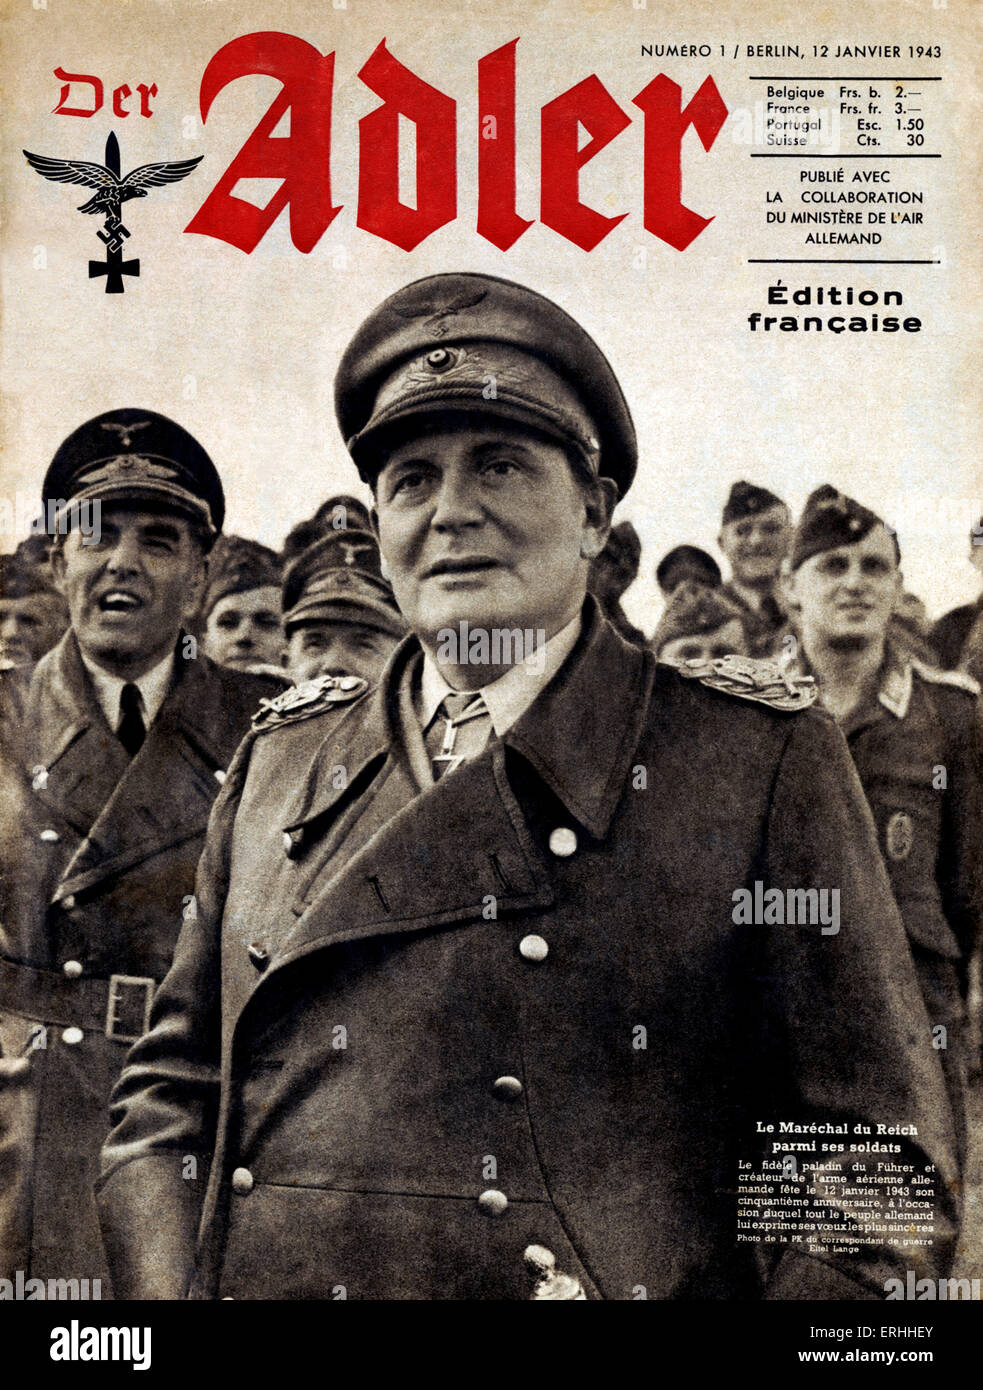 Hermann Göring - portrait of the Nazi Reichmarshall on the cover of Der Adler (French edition) on his fiftieth - Stock Image